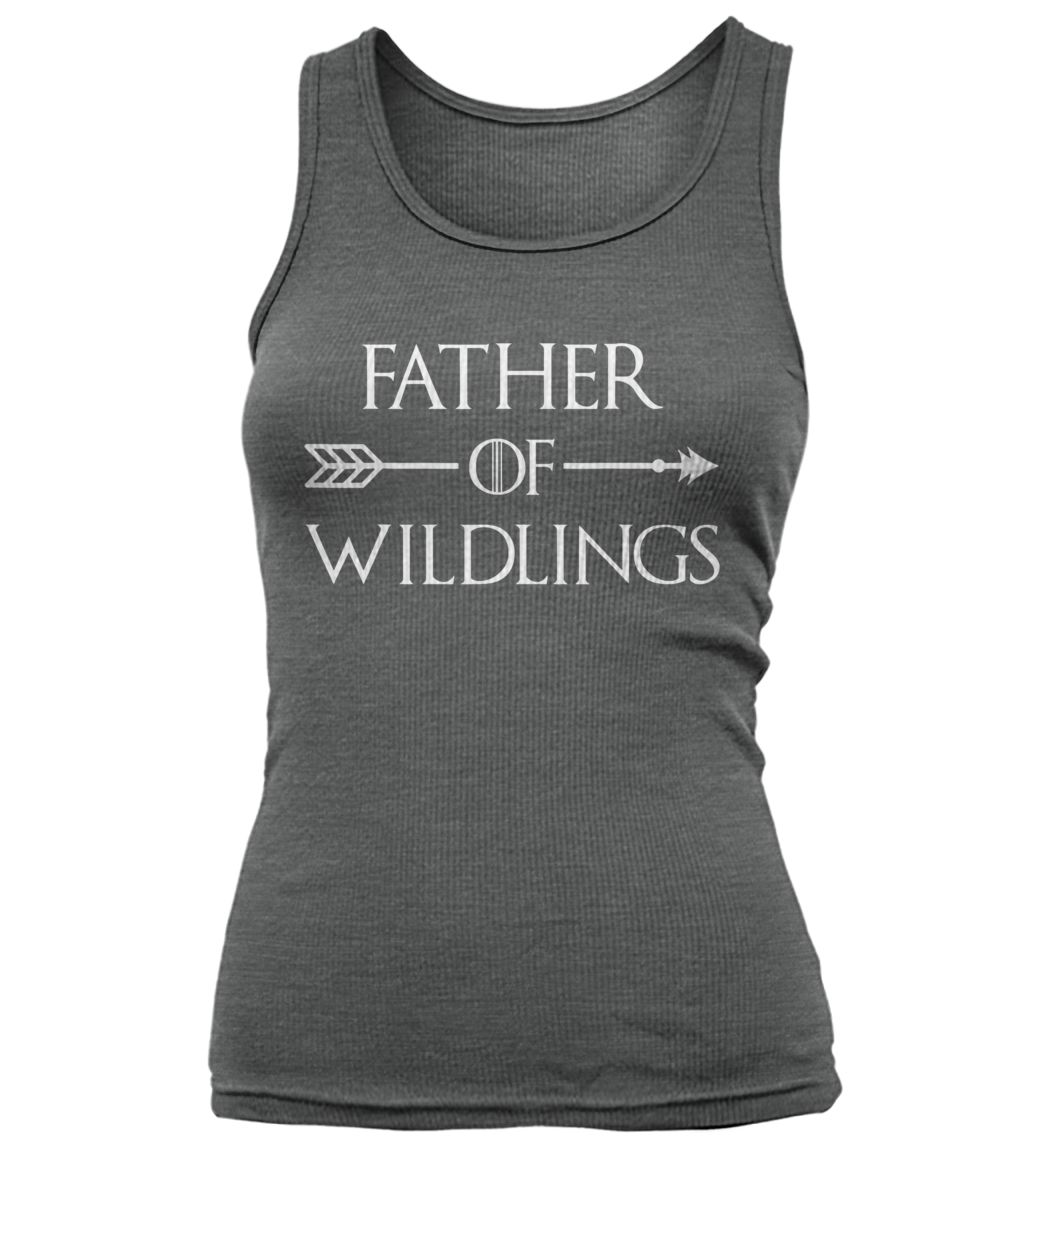 Game of thrones father of wildlings women's tank top